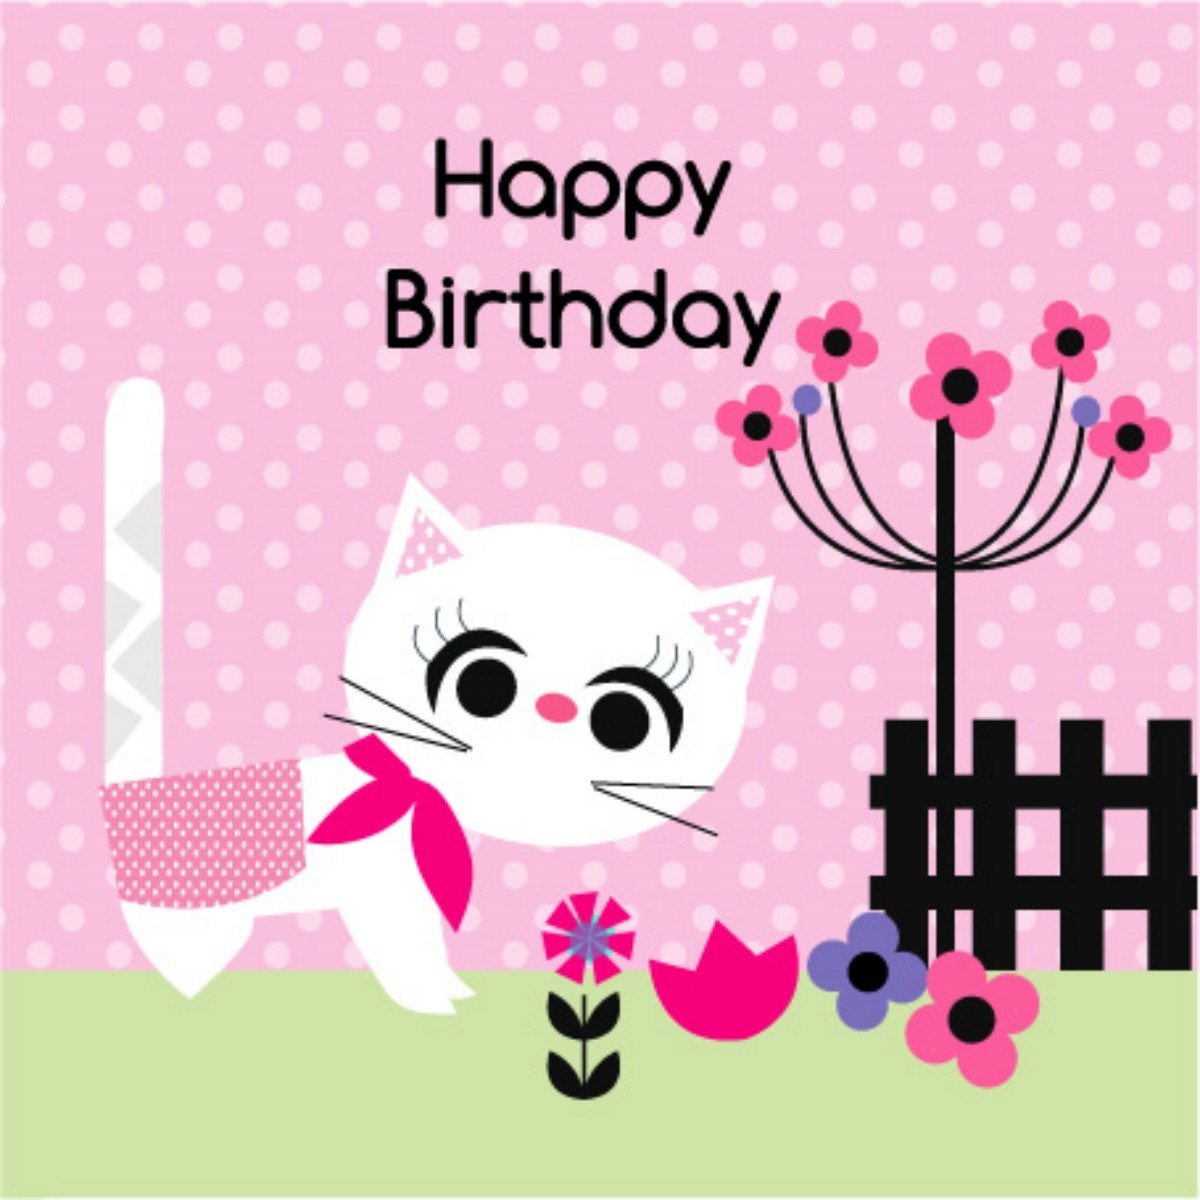 Greeting card greeting card uk birthday greeting cards bookmarktalkfo